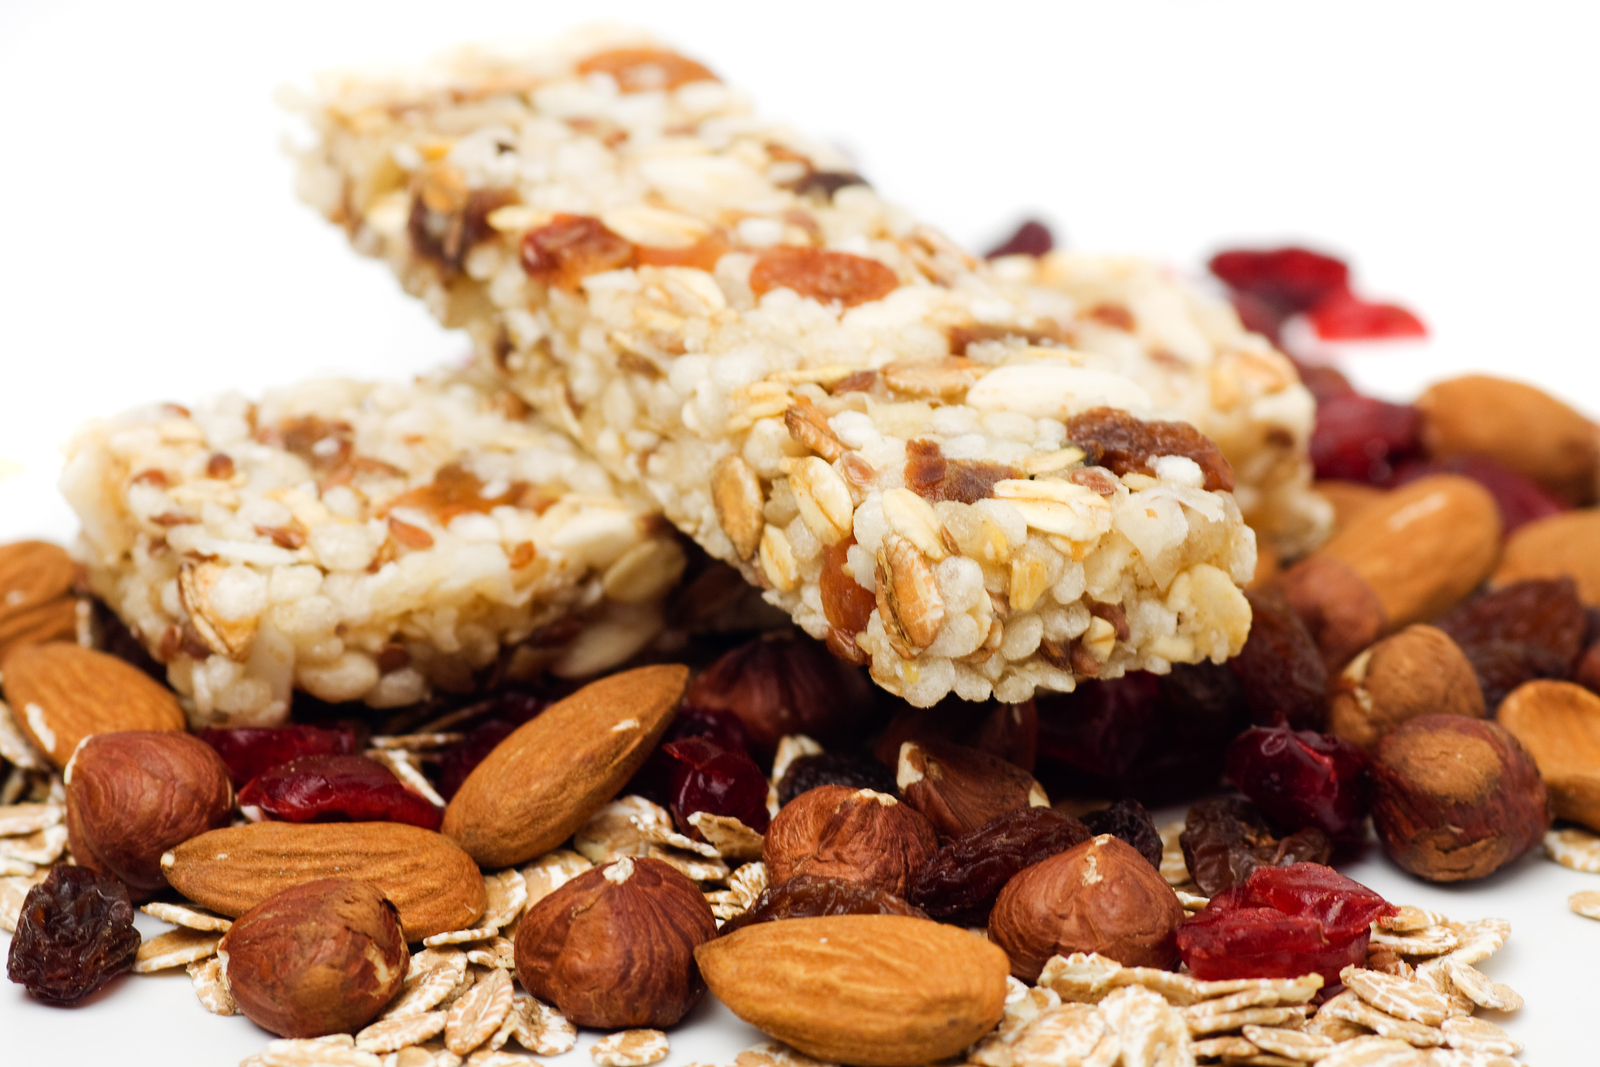 Tips for Choosing the Healthiest Protein Bars